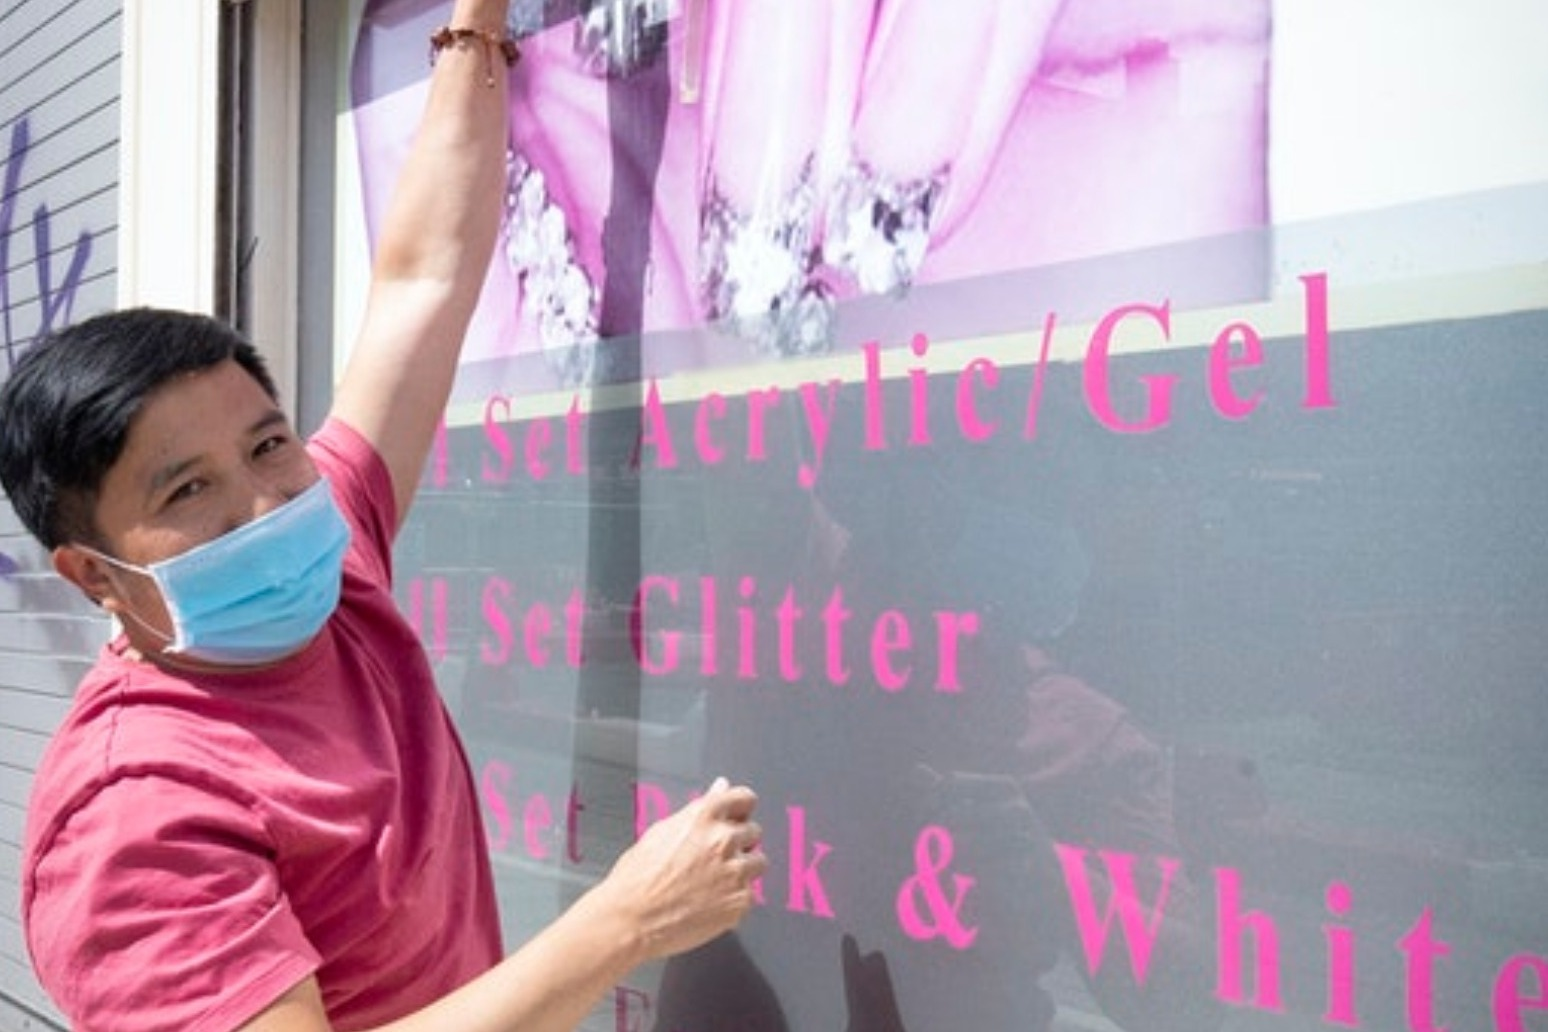 Beauticians back in business as more lockdown restrictions lifted